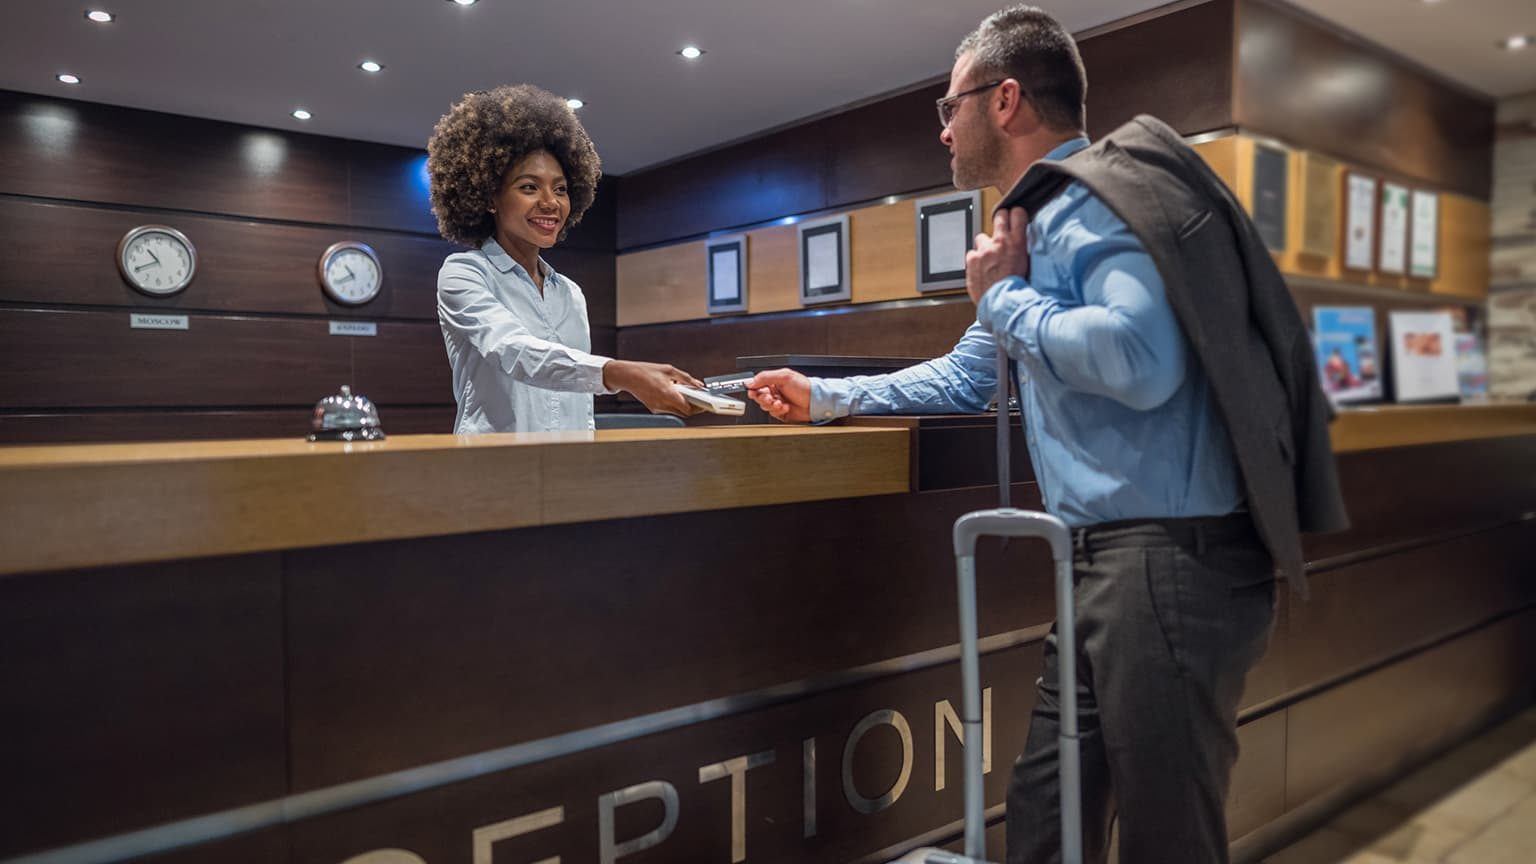 Man checking in at a hotel with a receptionist